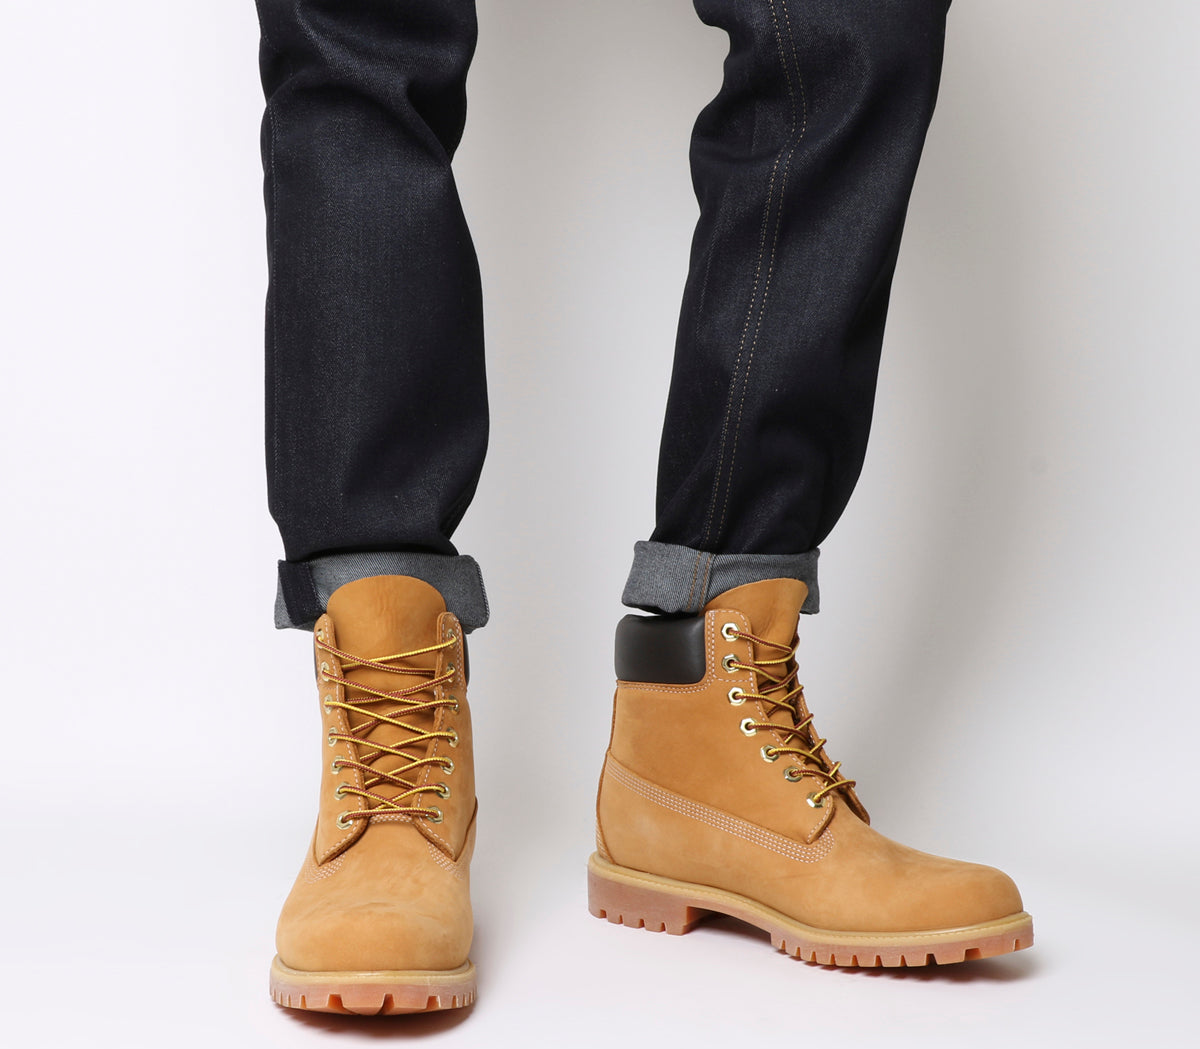 d1470df459c9 Mens Timberland 6 In Buck Boots Wheat Nubuck – OFFCUTS SHOES by OFFICE